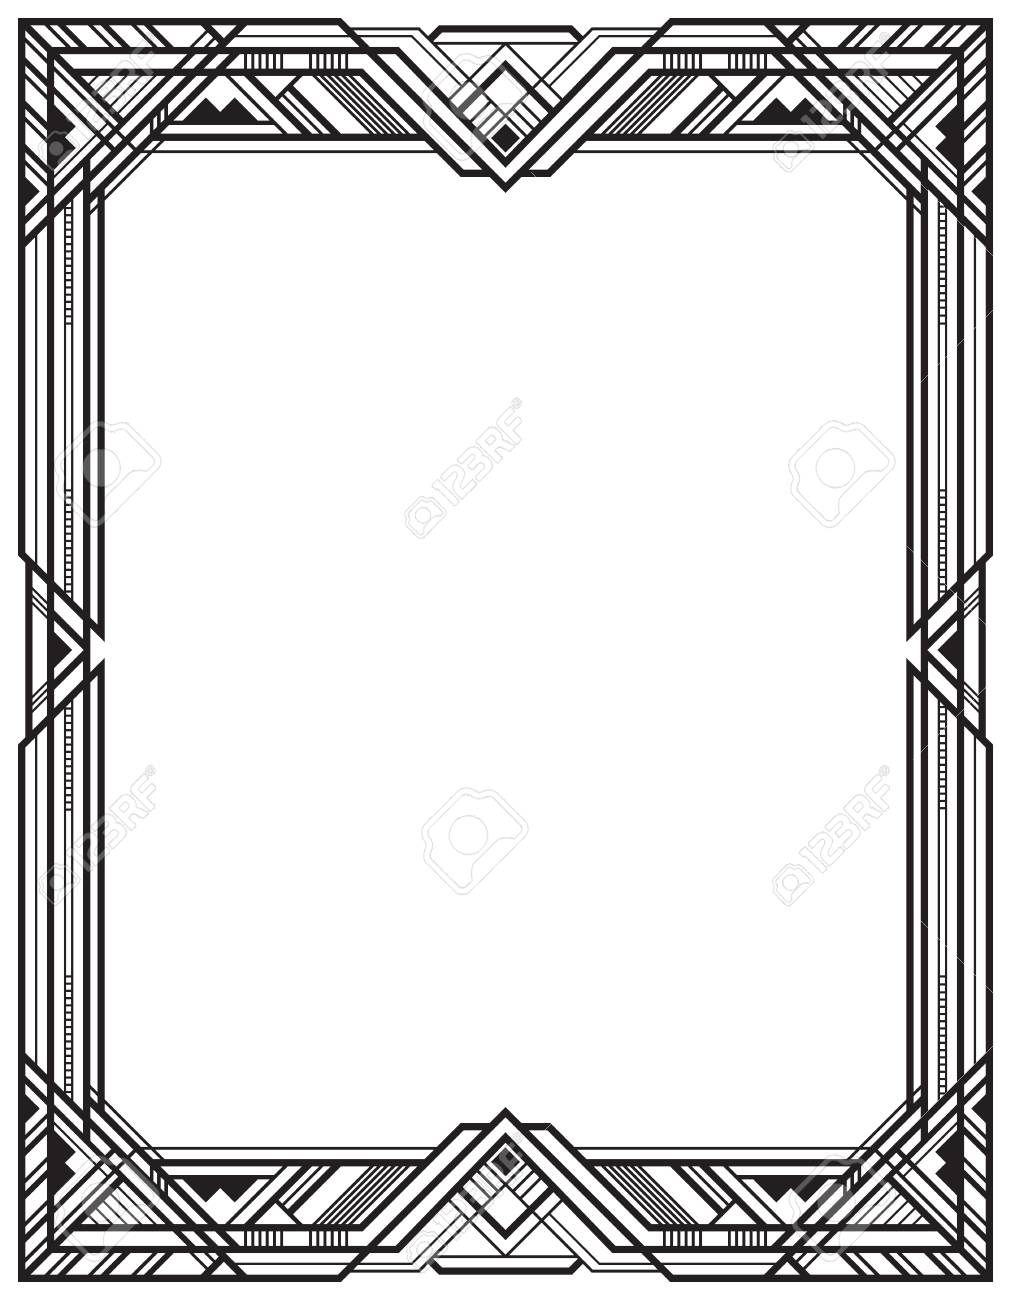 Rectangular Black Retro Frame Art Deco Style Royalty Free Cliparts